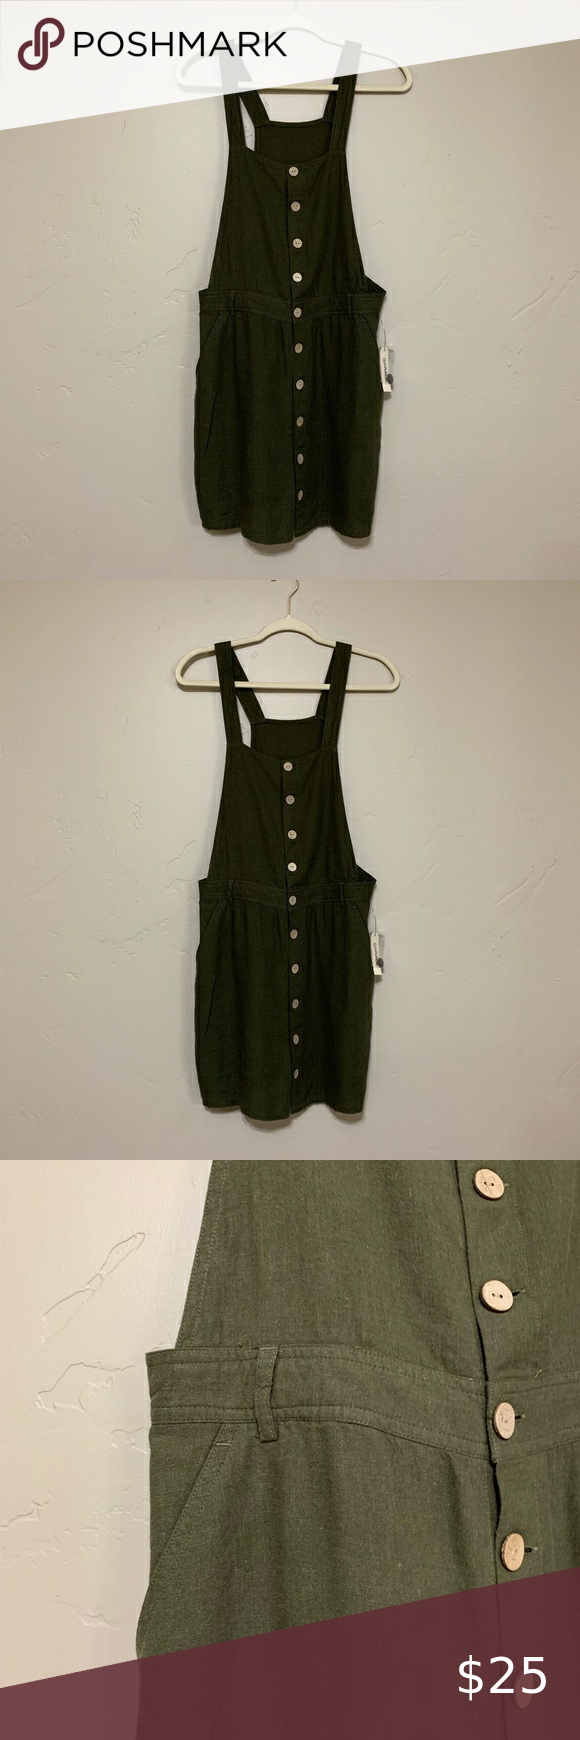 Nwt Garage Green Overall Dress Size Med Overall Dress Dresses Clothes Design [ 1740 x 580 Pixel ]